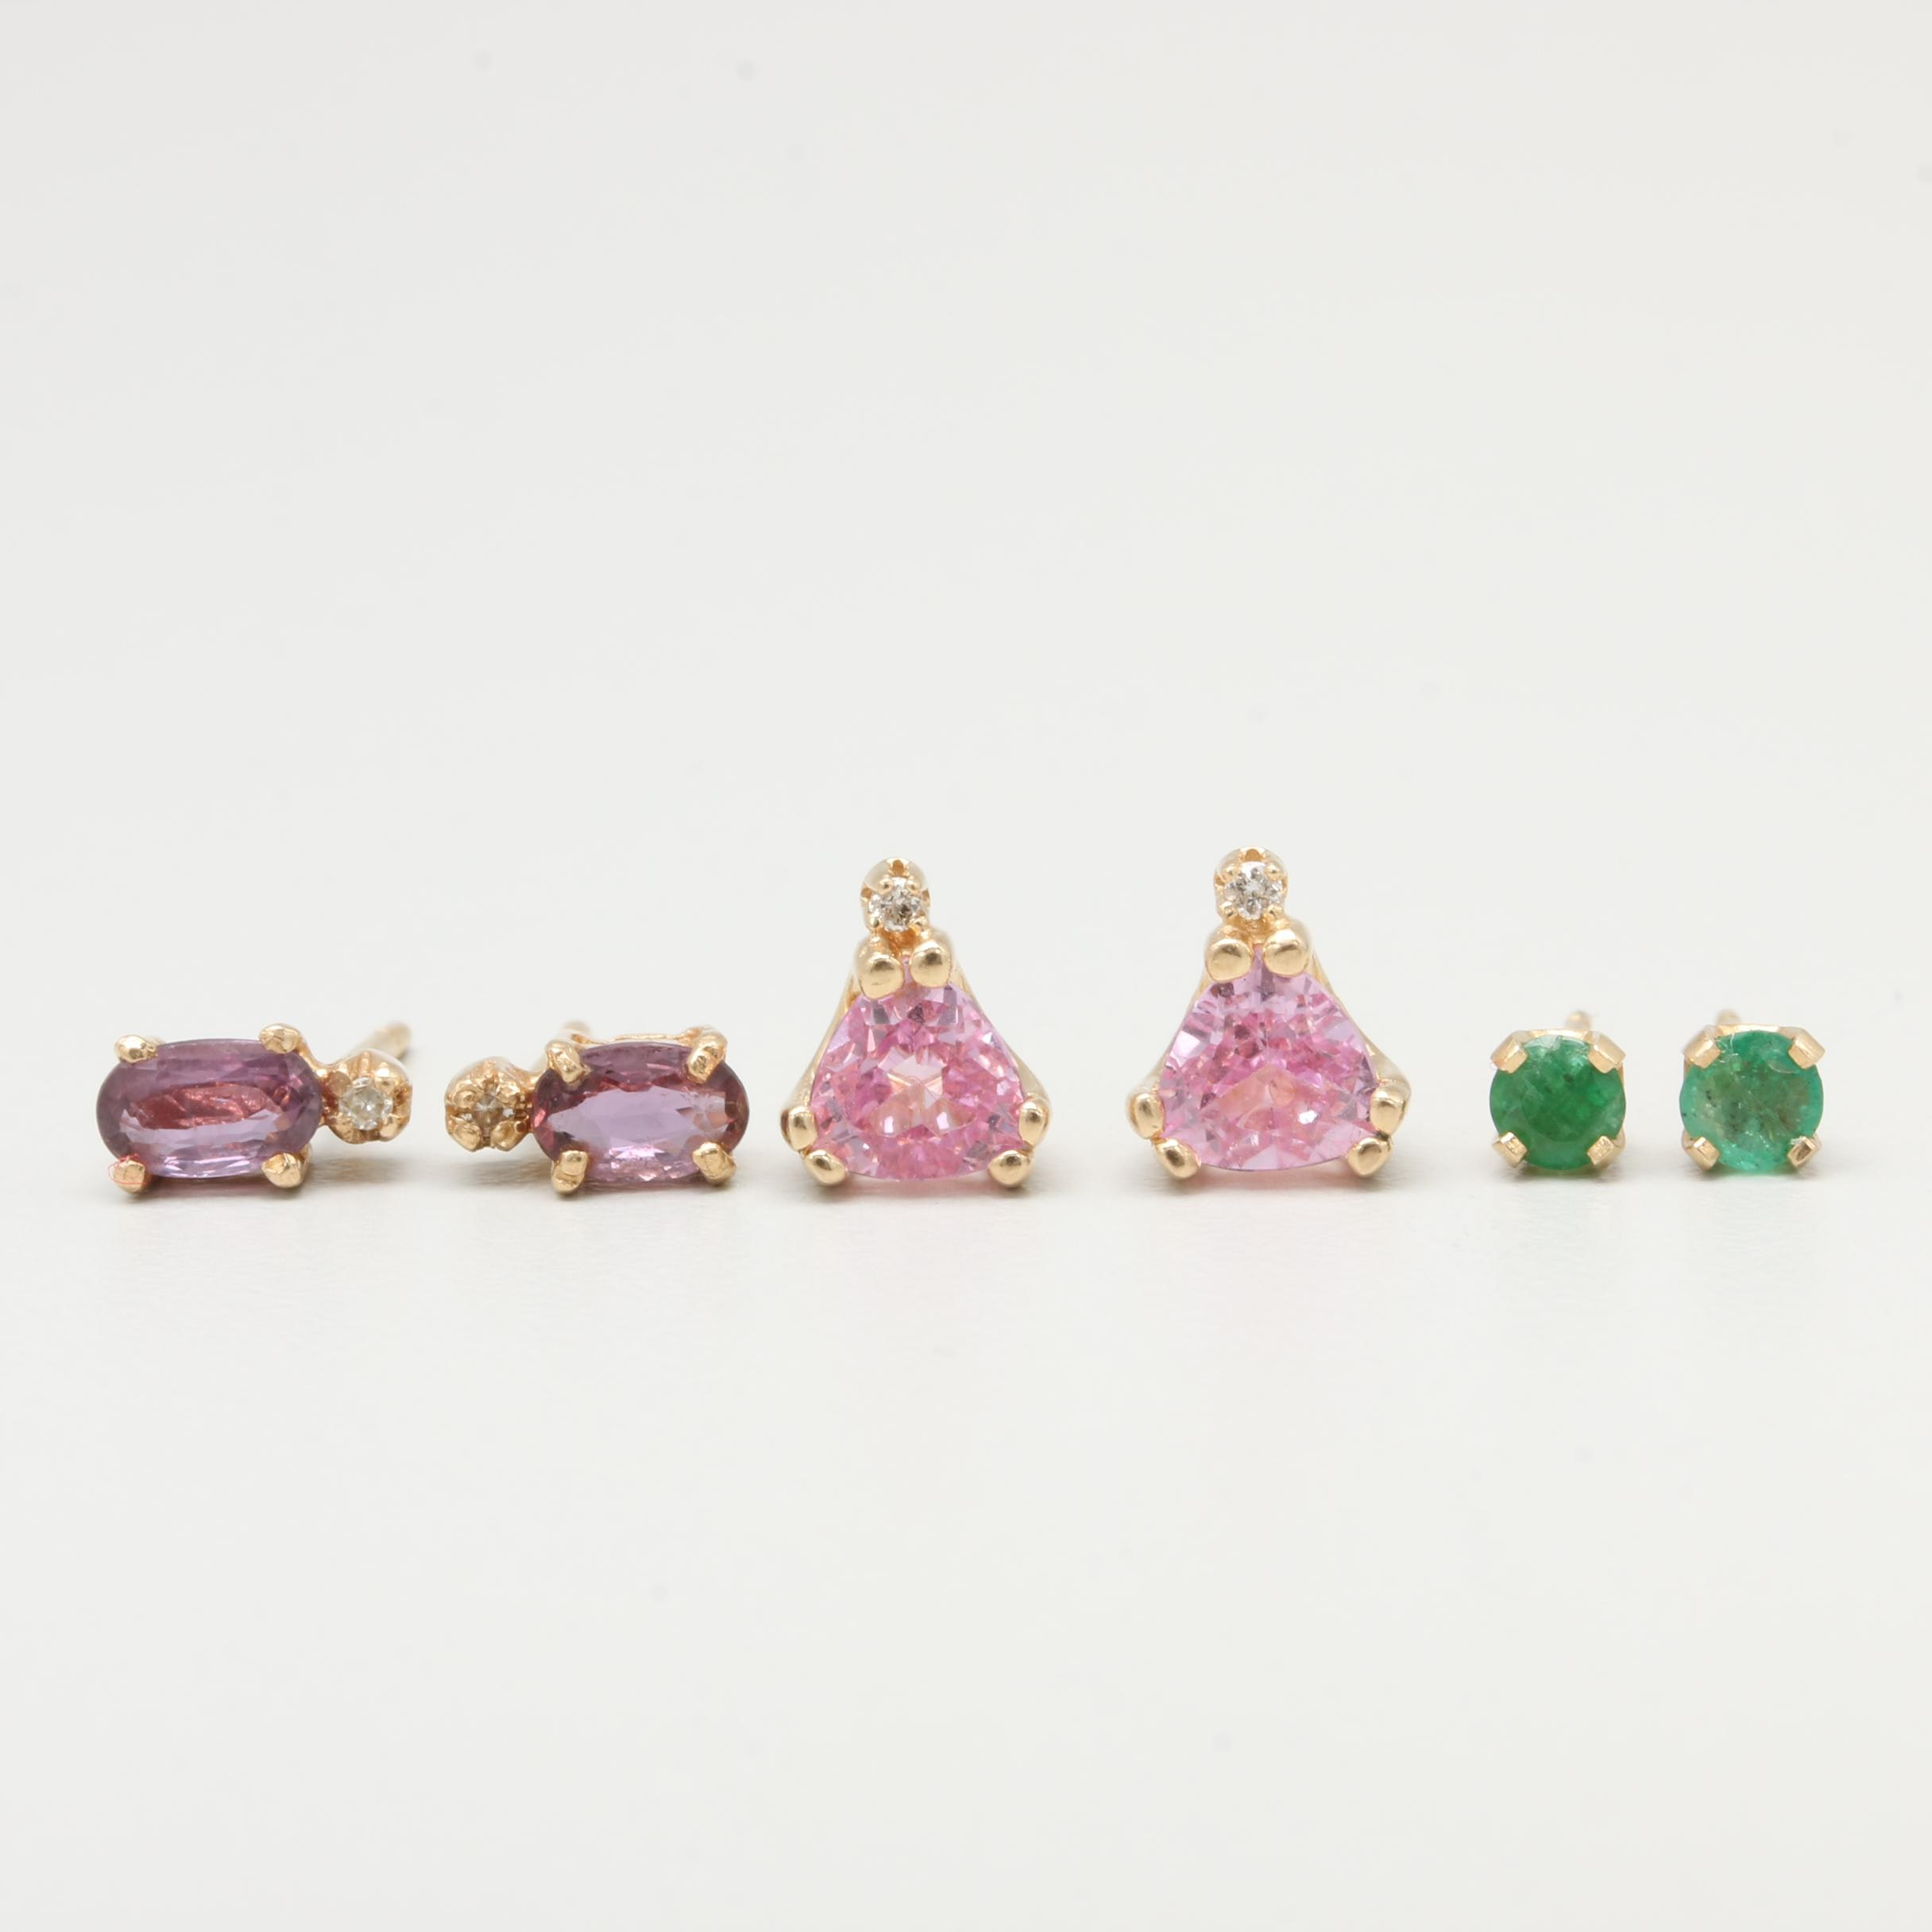 14K Yellow Gold Diamond, Sapphire, Emerald and Synthetic Sapphire Earrings